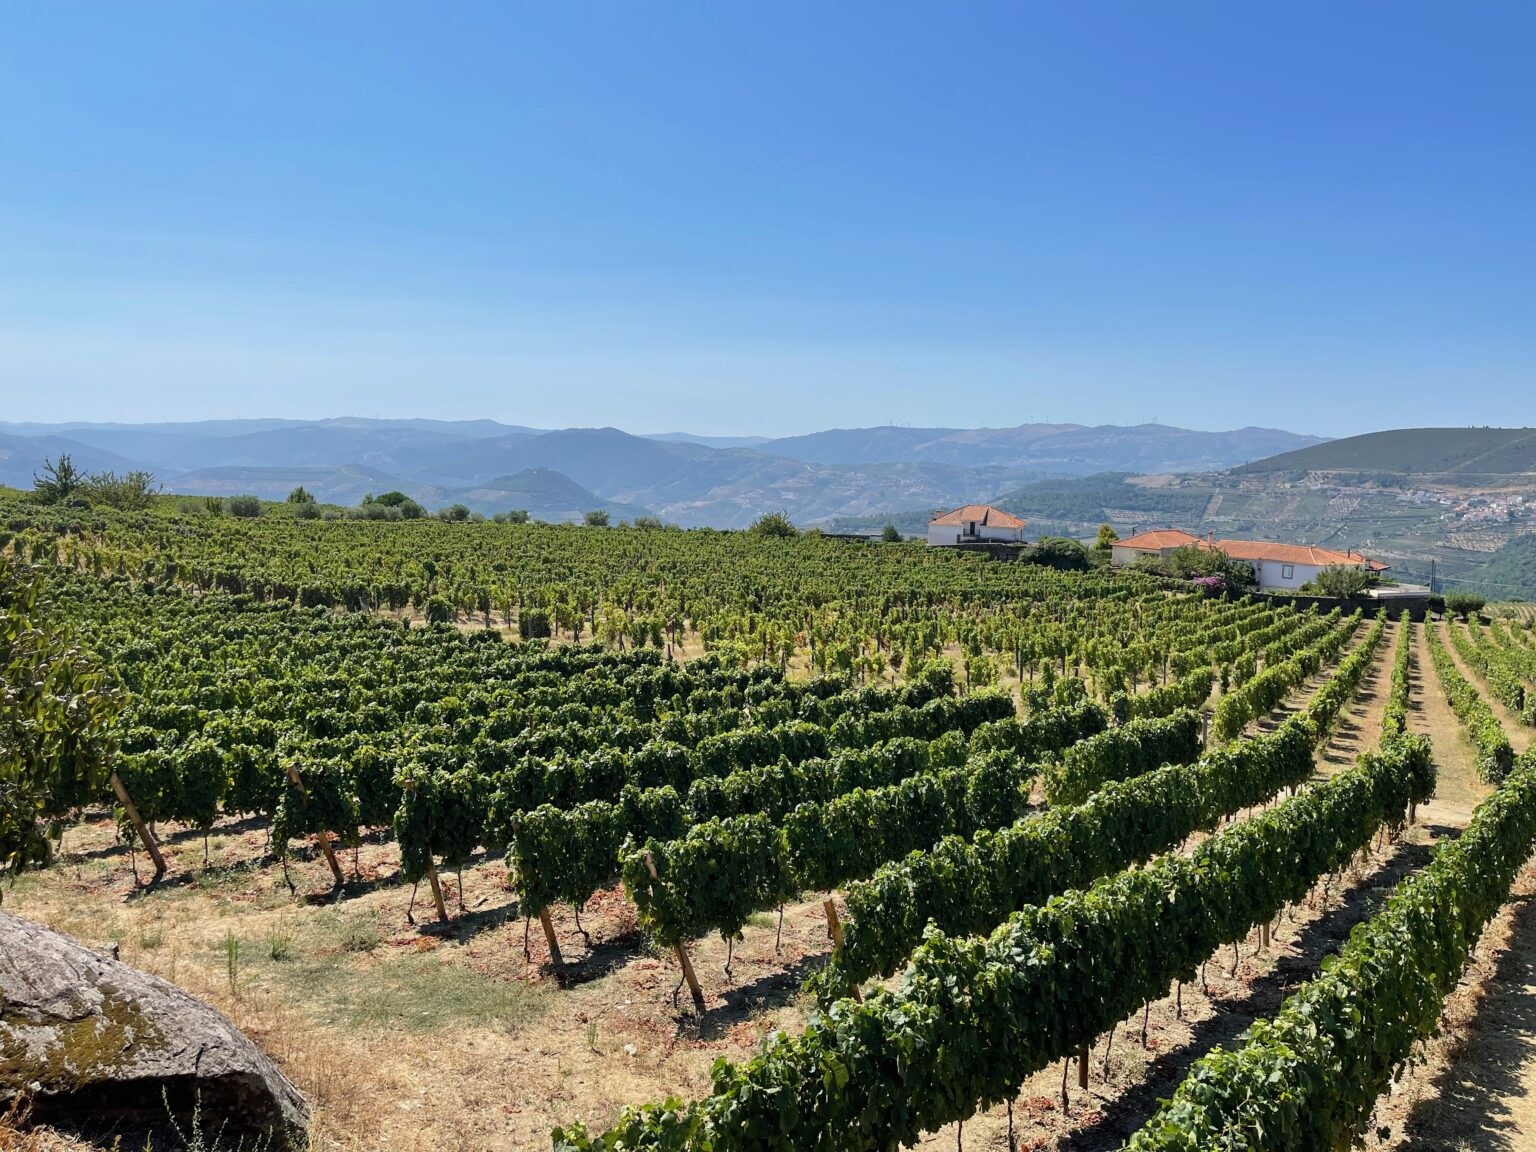 Vineyards are everywhere along the Douro River.